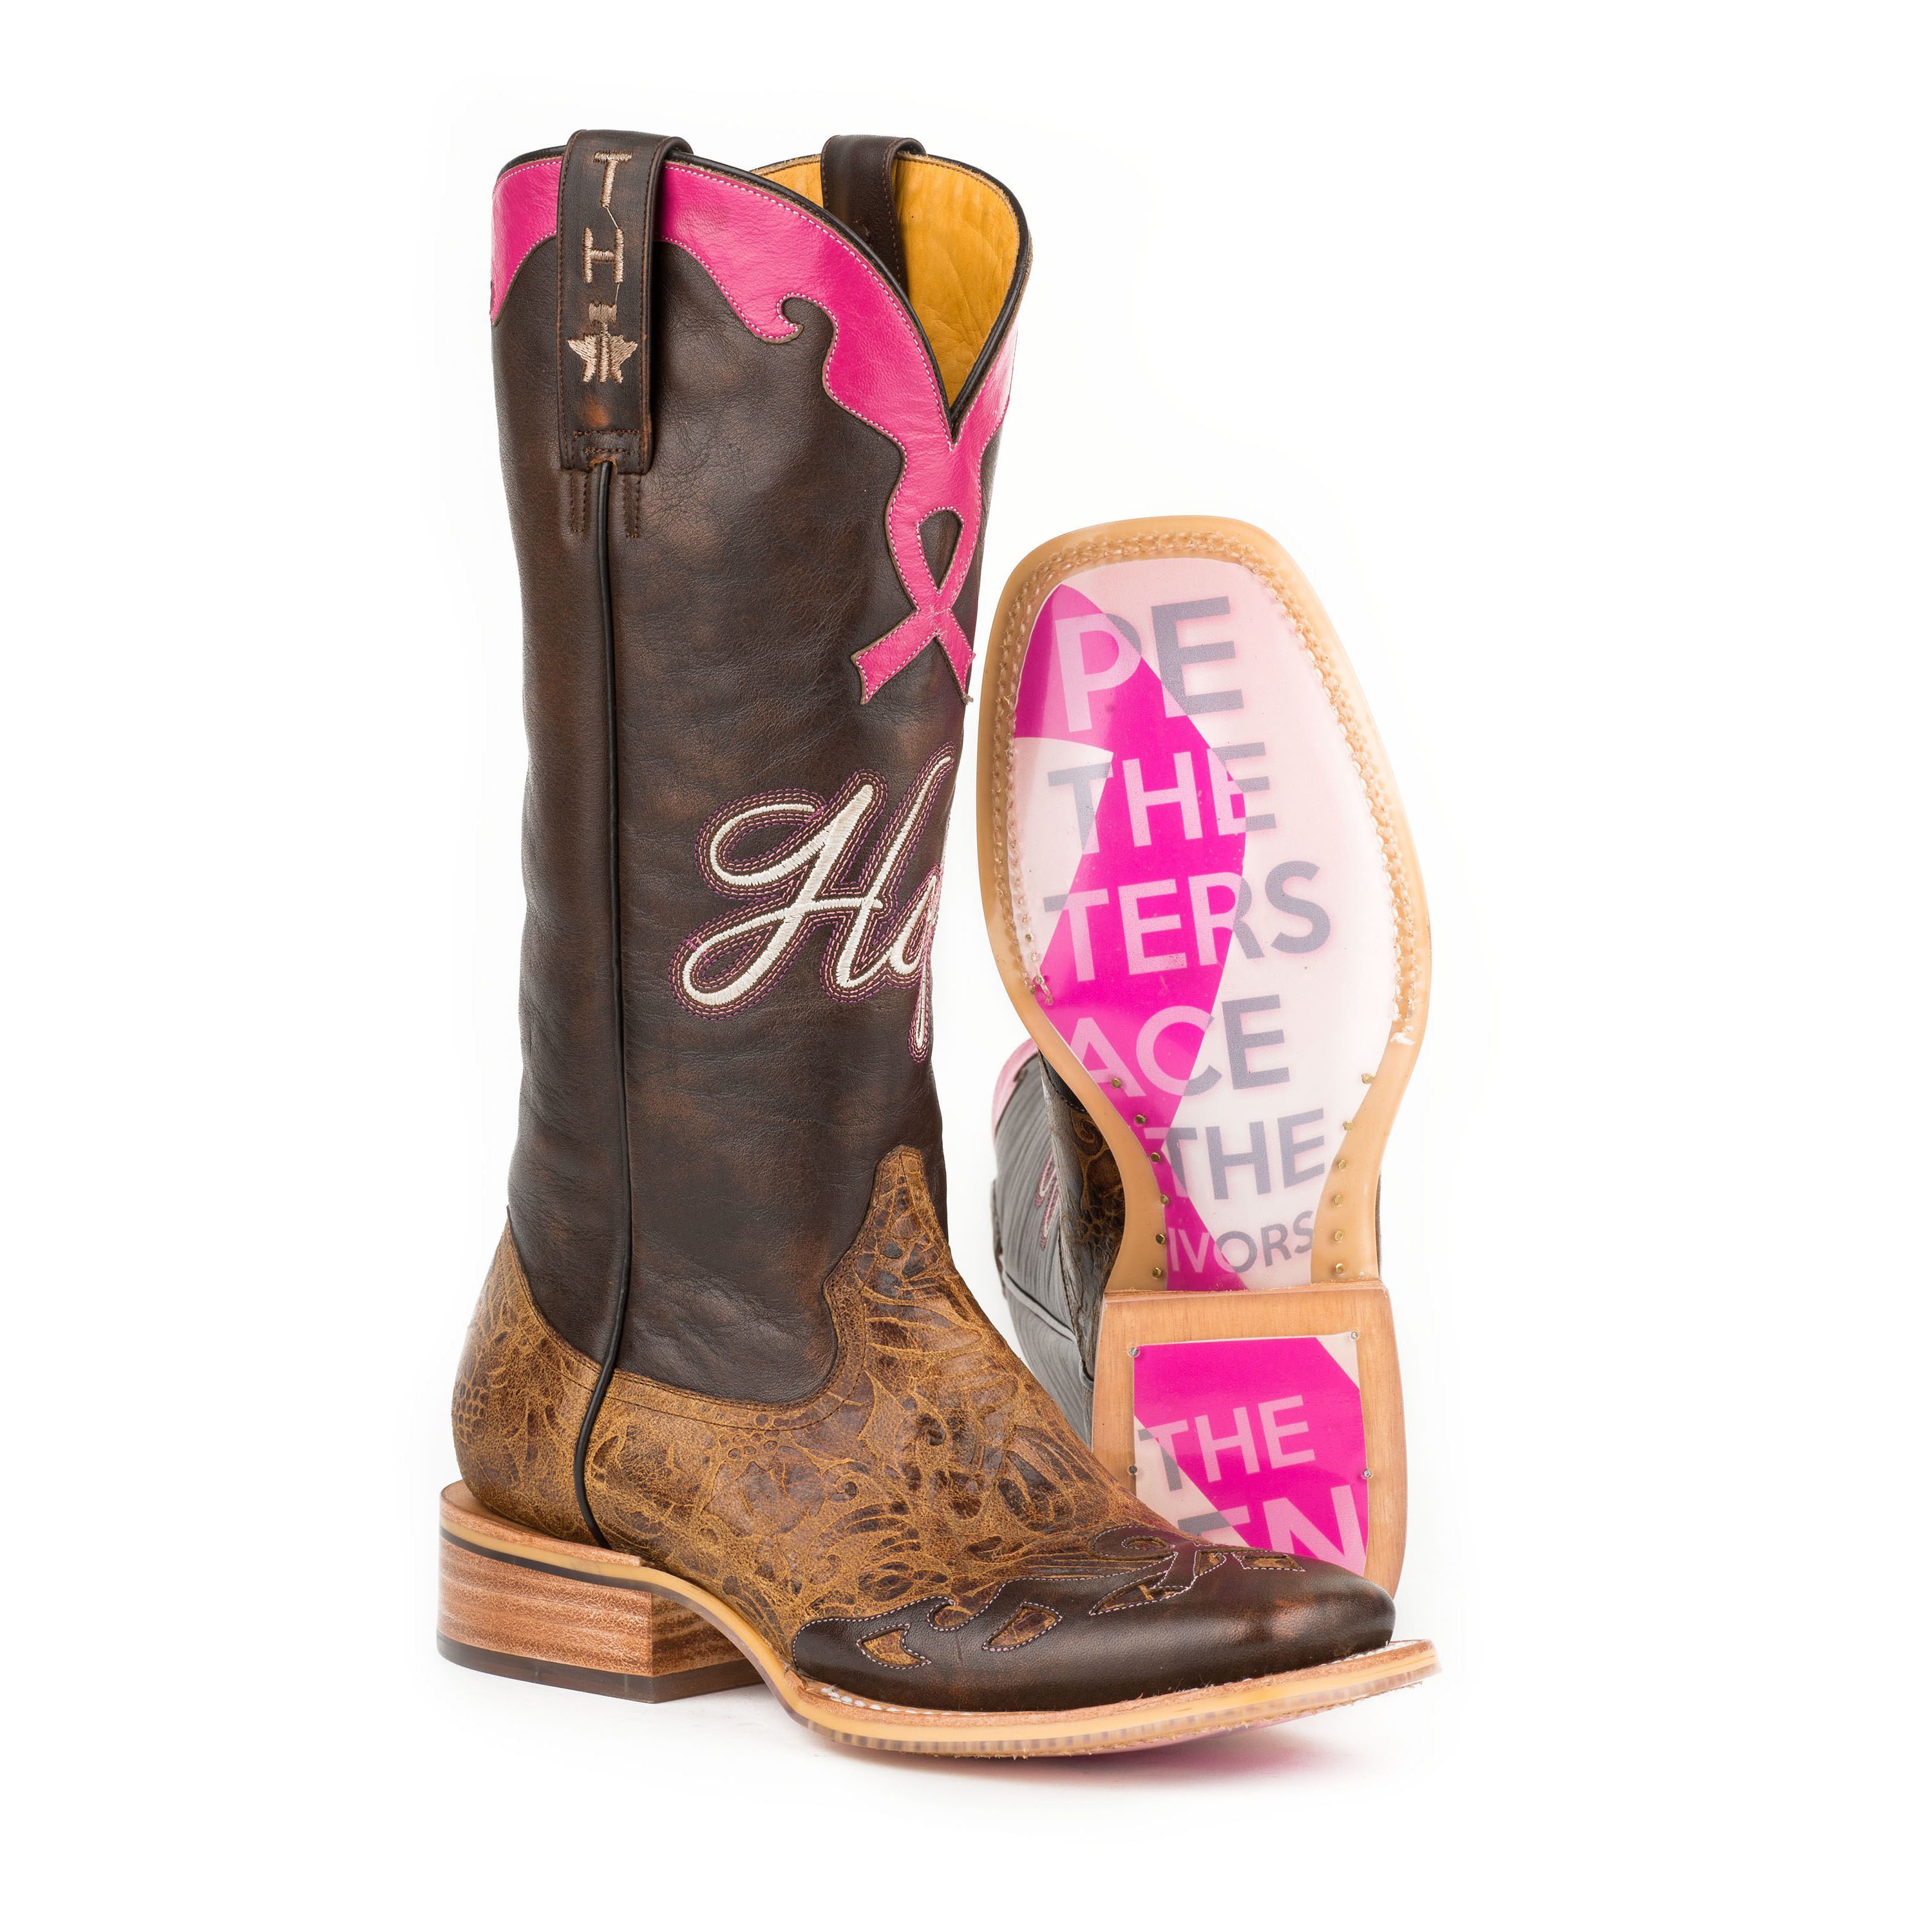 47a9762fa50 Tin Haul Ladies Hope Boots w/Staying Strong Sole